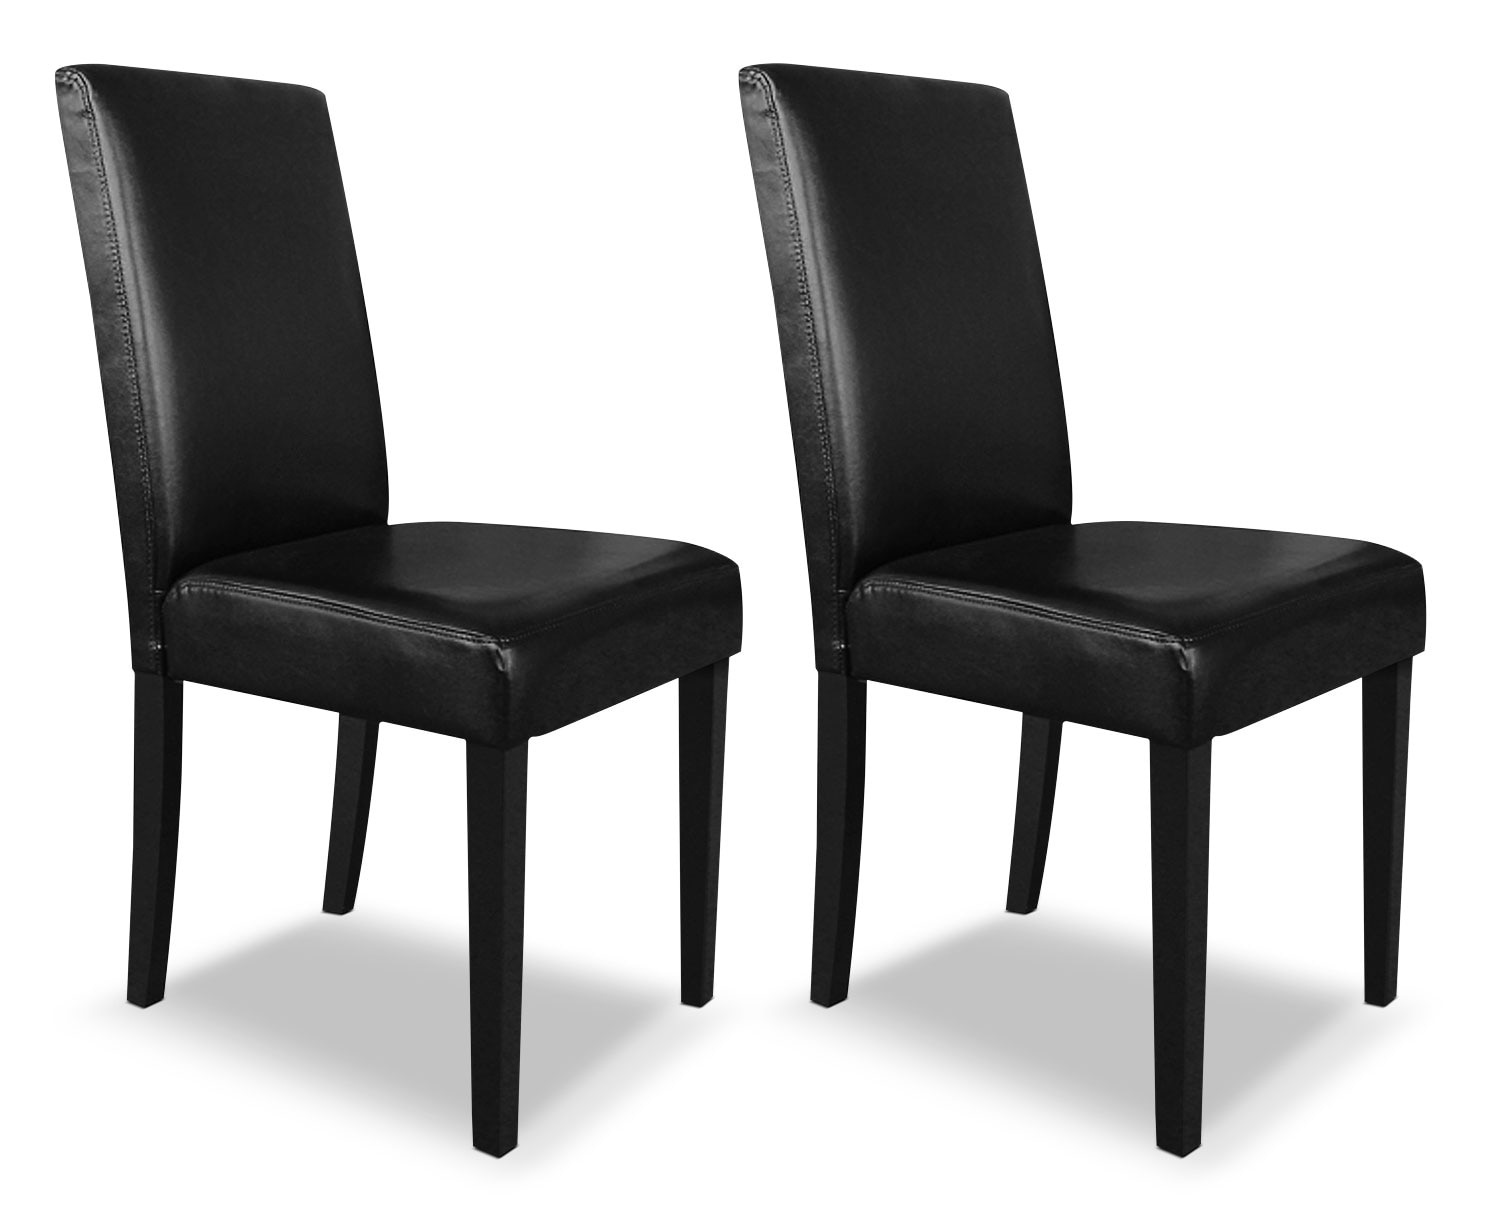 Dining Room Furniture - Black Faux Leather Accent Dining Chair – Set of 2